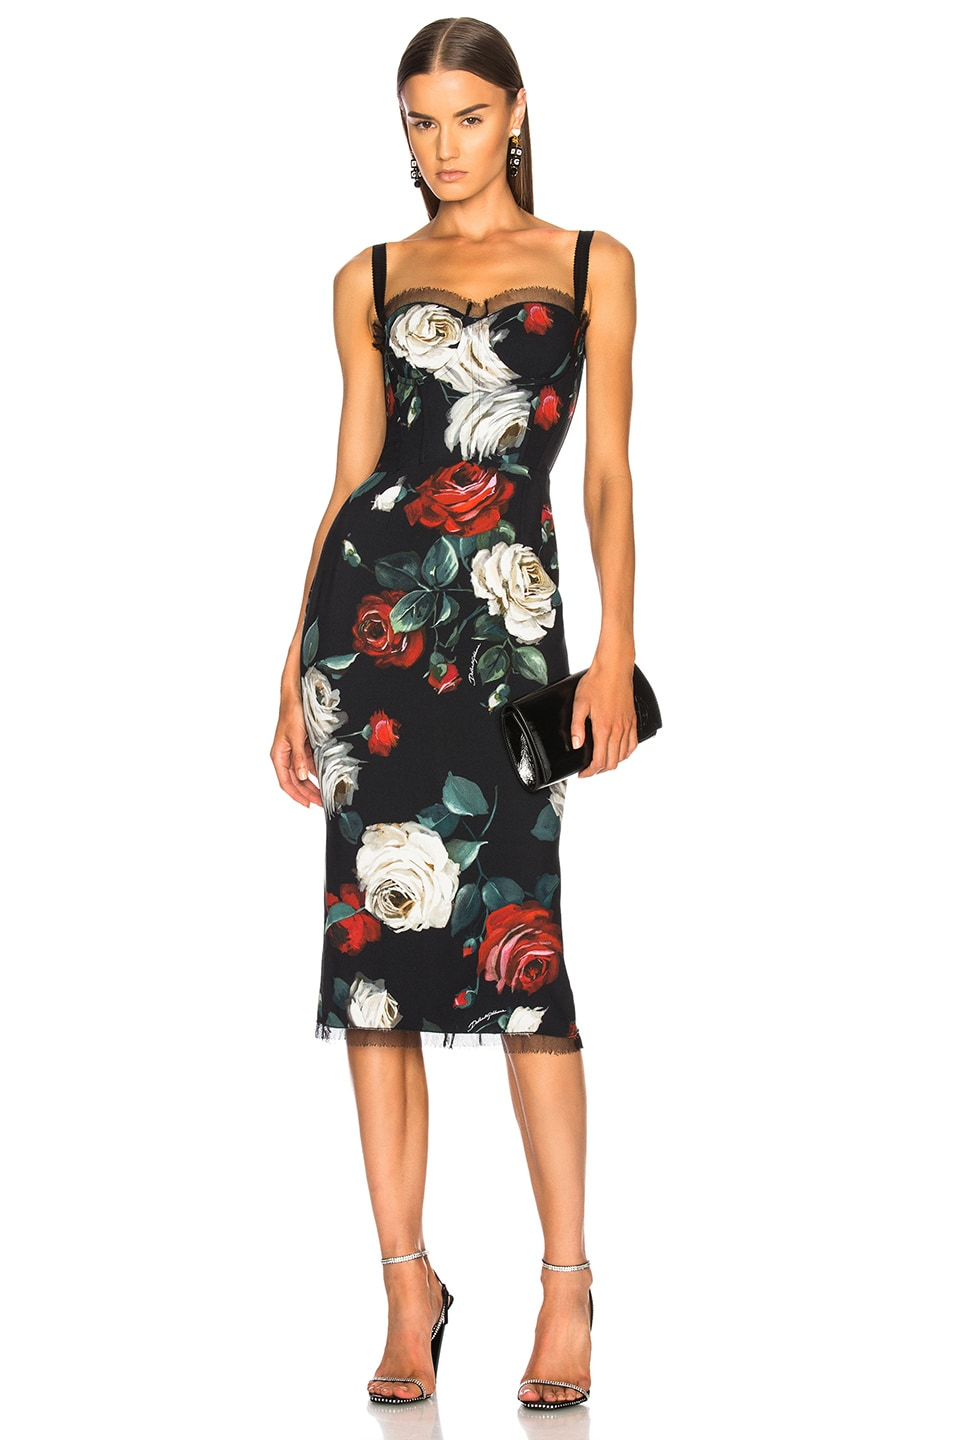 b7afba0ed8a Image 1 of Dolce   Gabbana Rose Print Sleeveless Midi Dress in Black  Multicolor